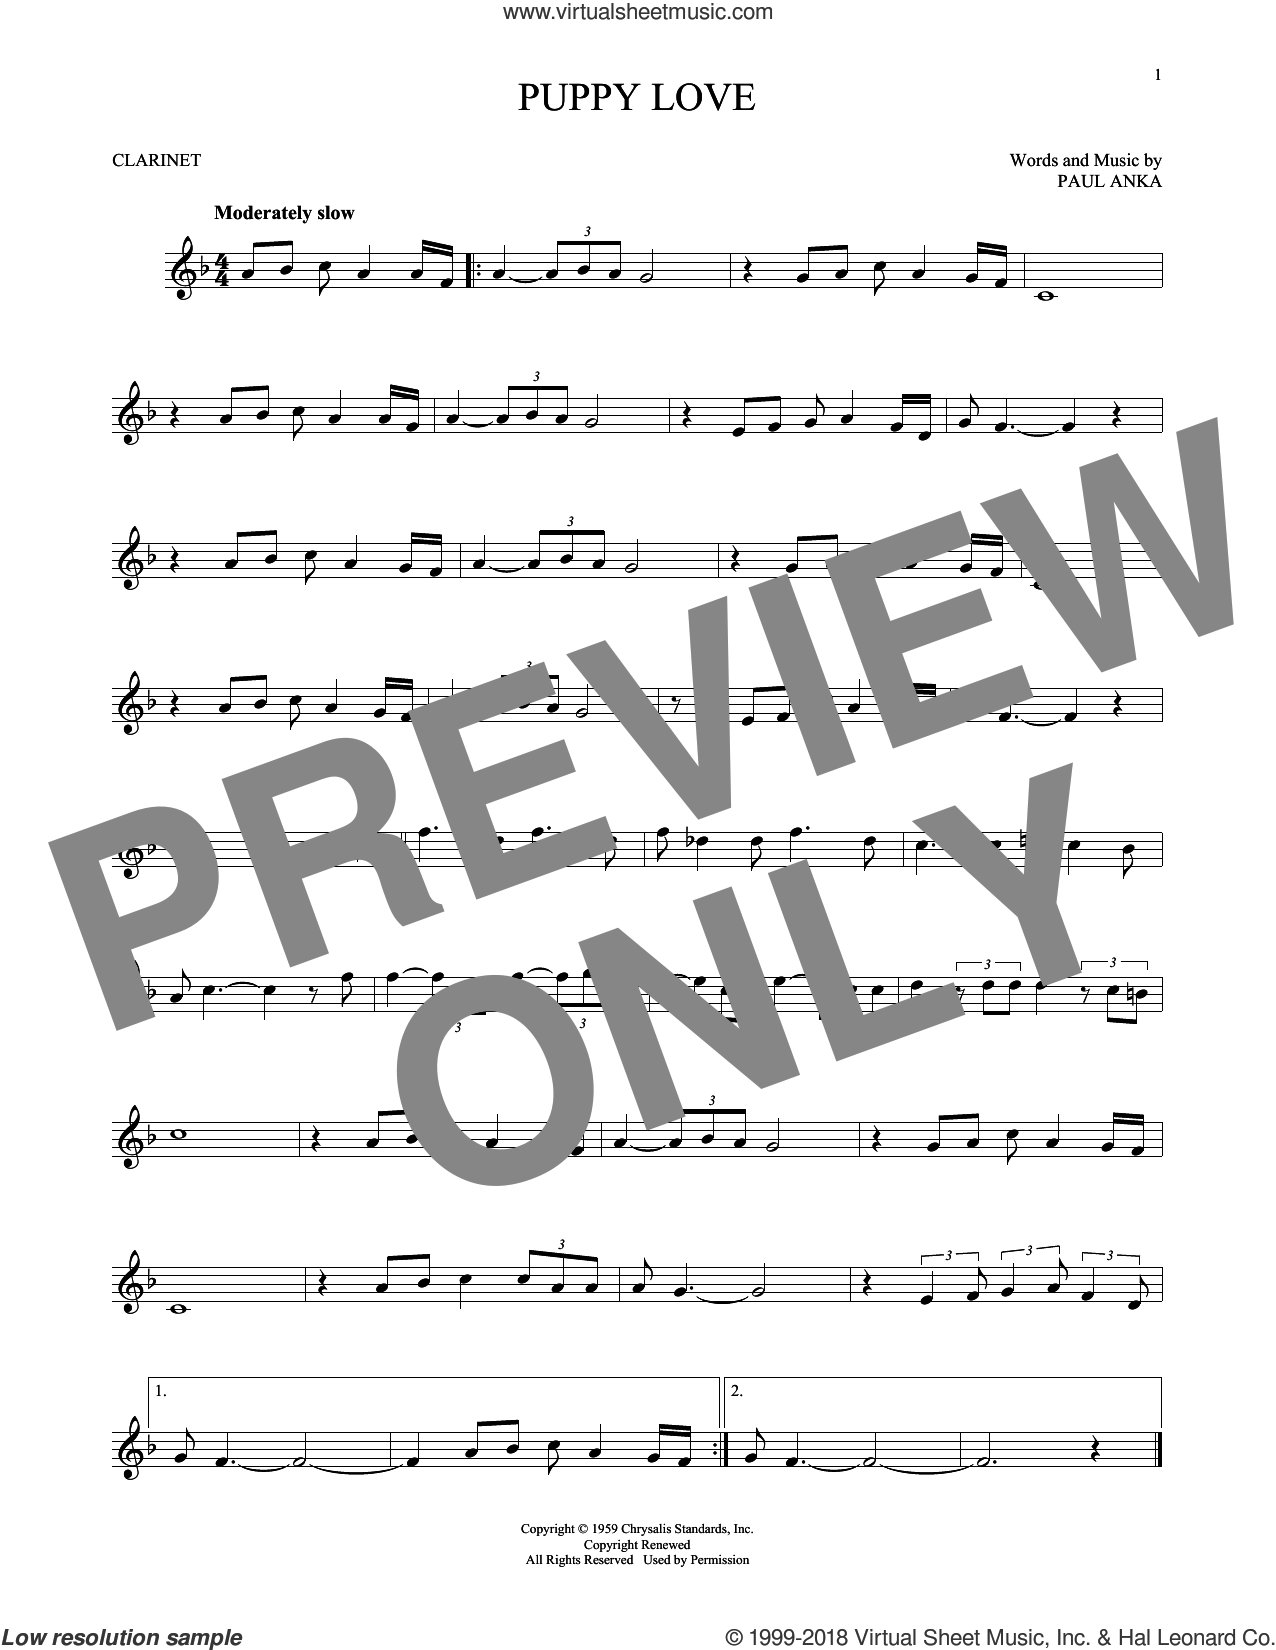 Puppy Love sheet music for clarinet solo by Paul Anka and Donny Osmond, intermediate skill level